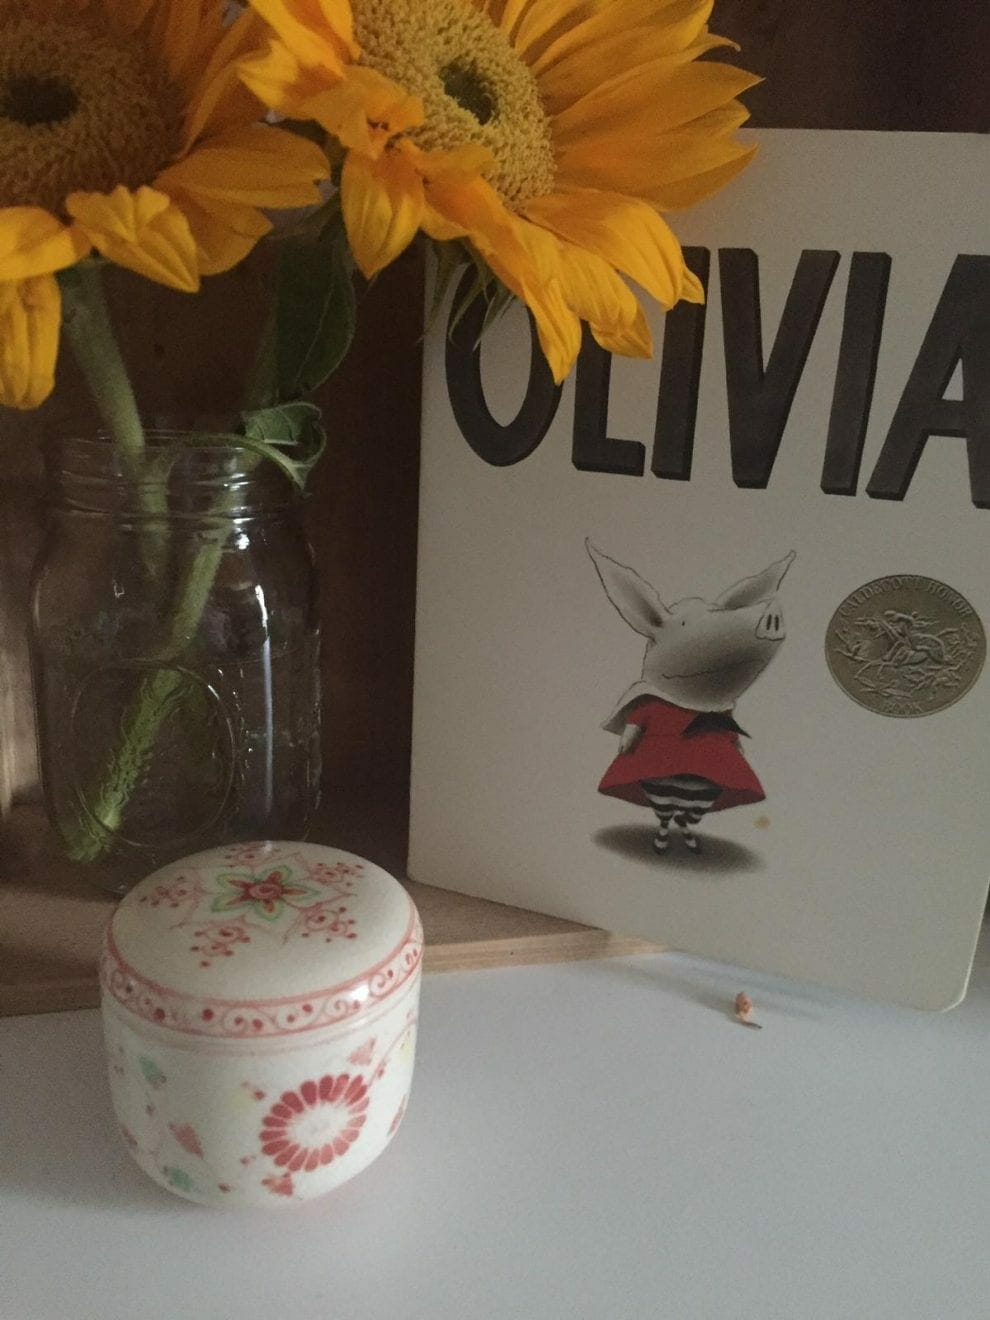 Memorial table for Olivia, contributed by mother Jillian